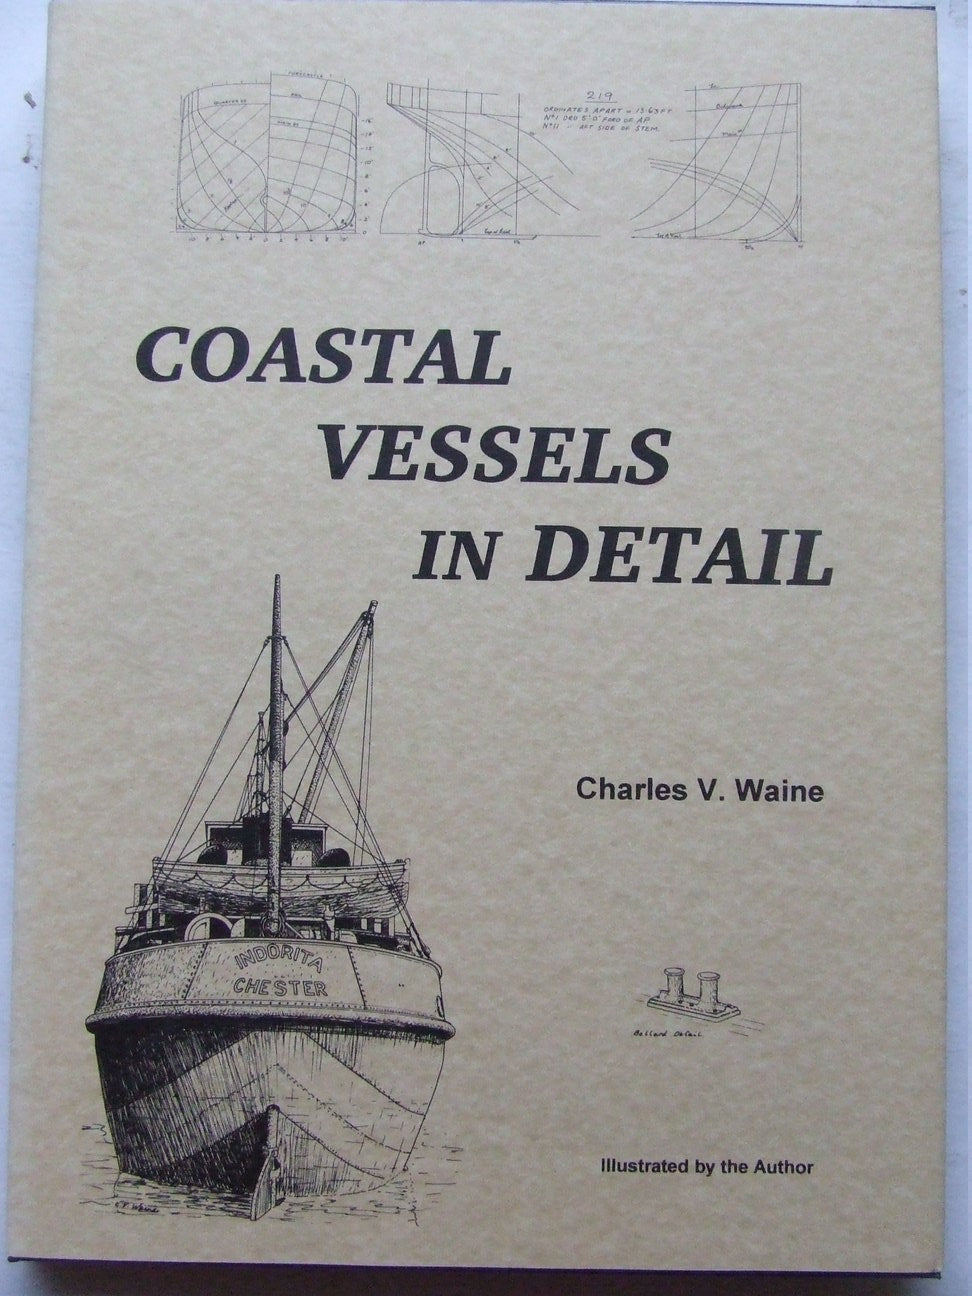 Coastal Vessels in Detail